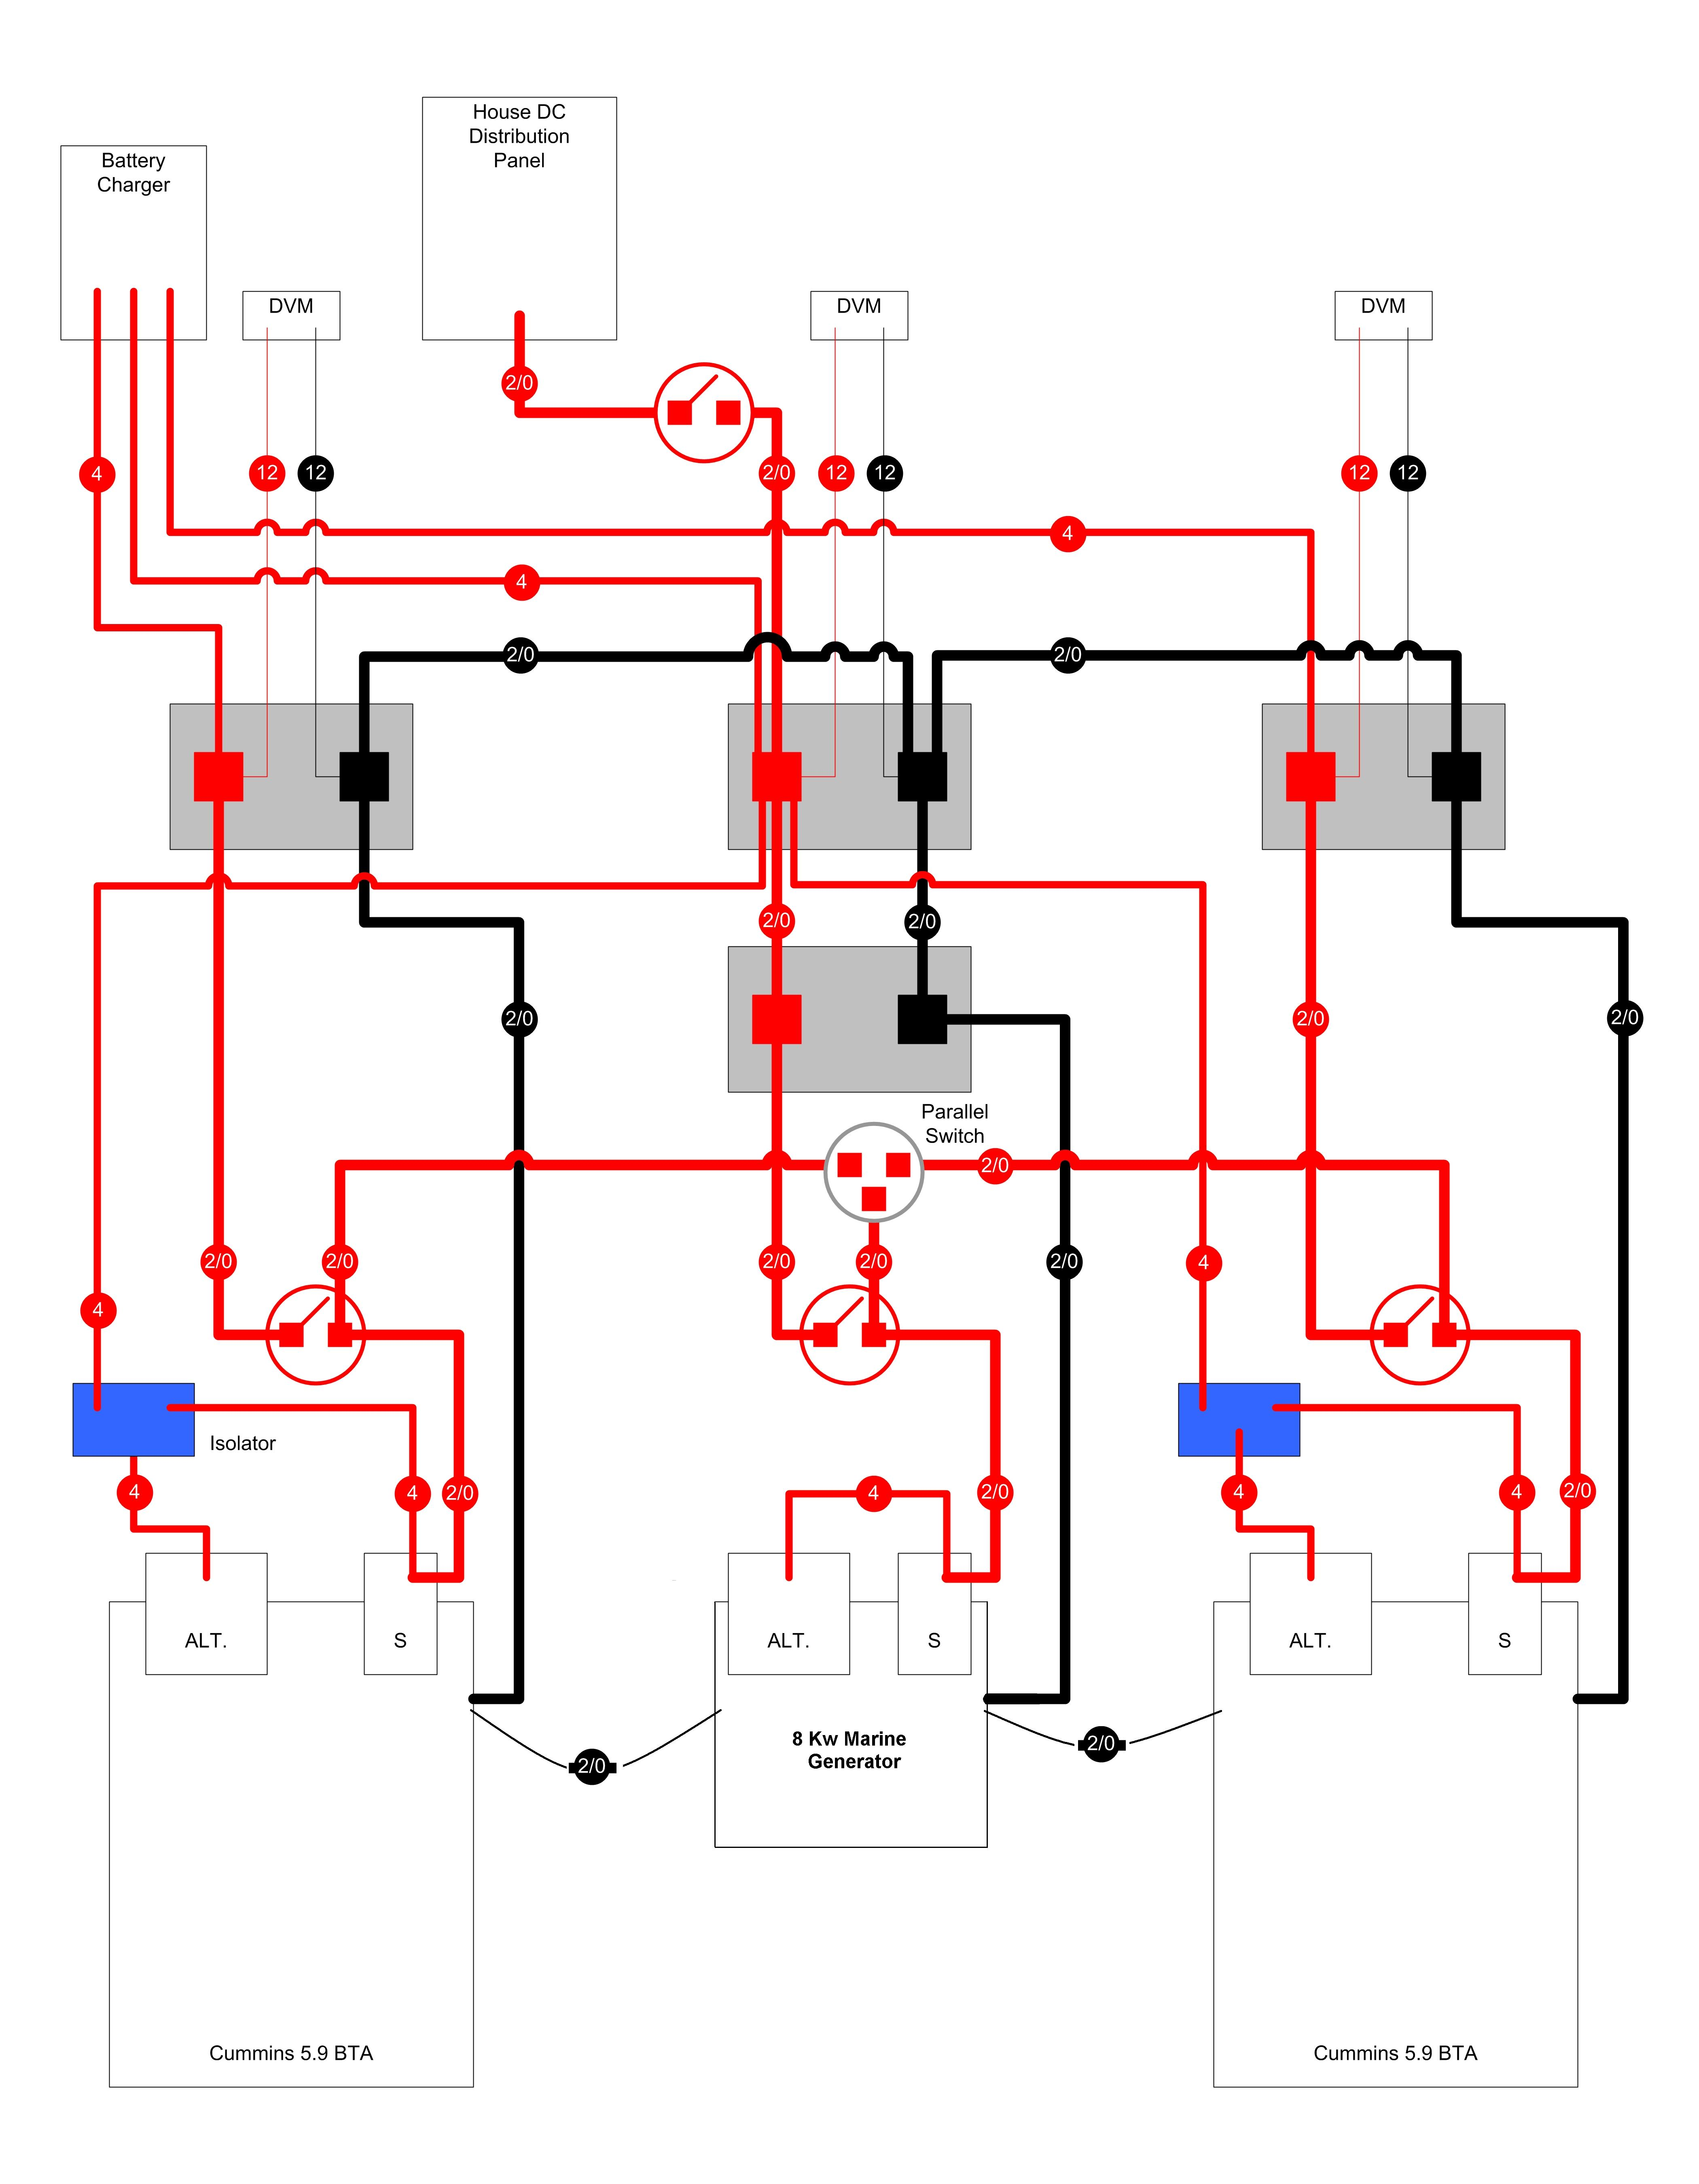 typical dc power distribution examples for marine engines electrical diagram software mac electrical diagram software